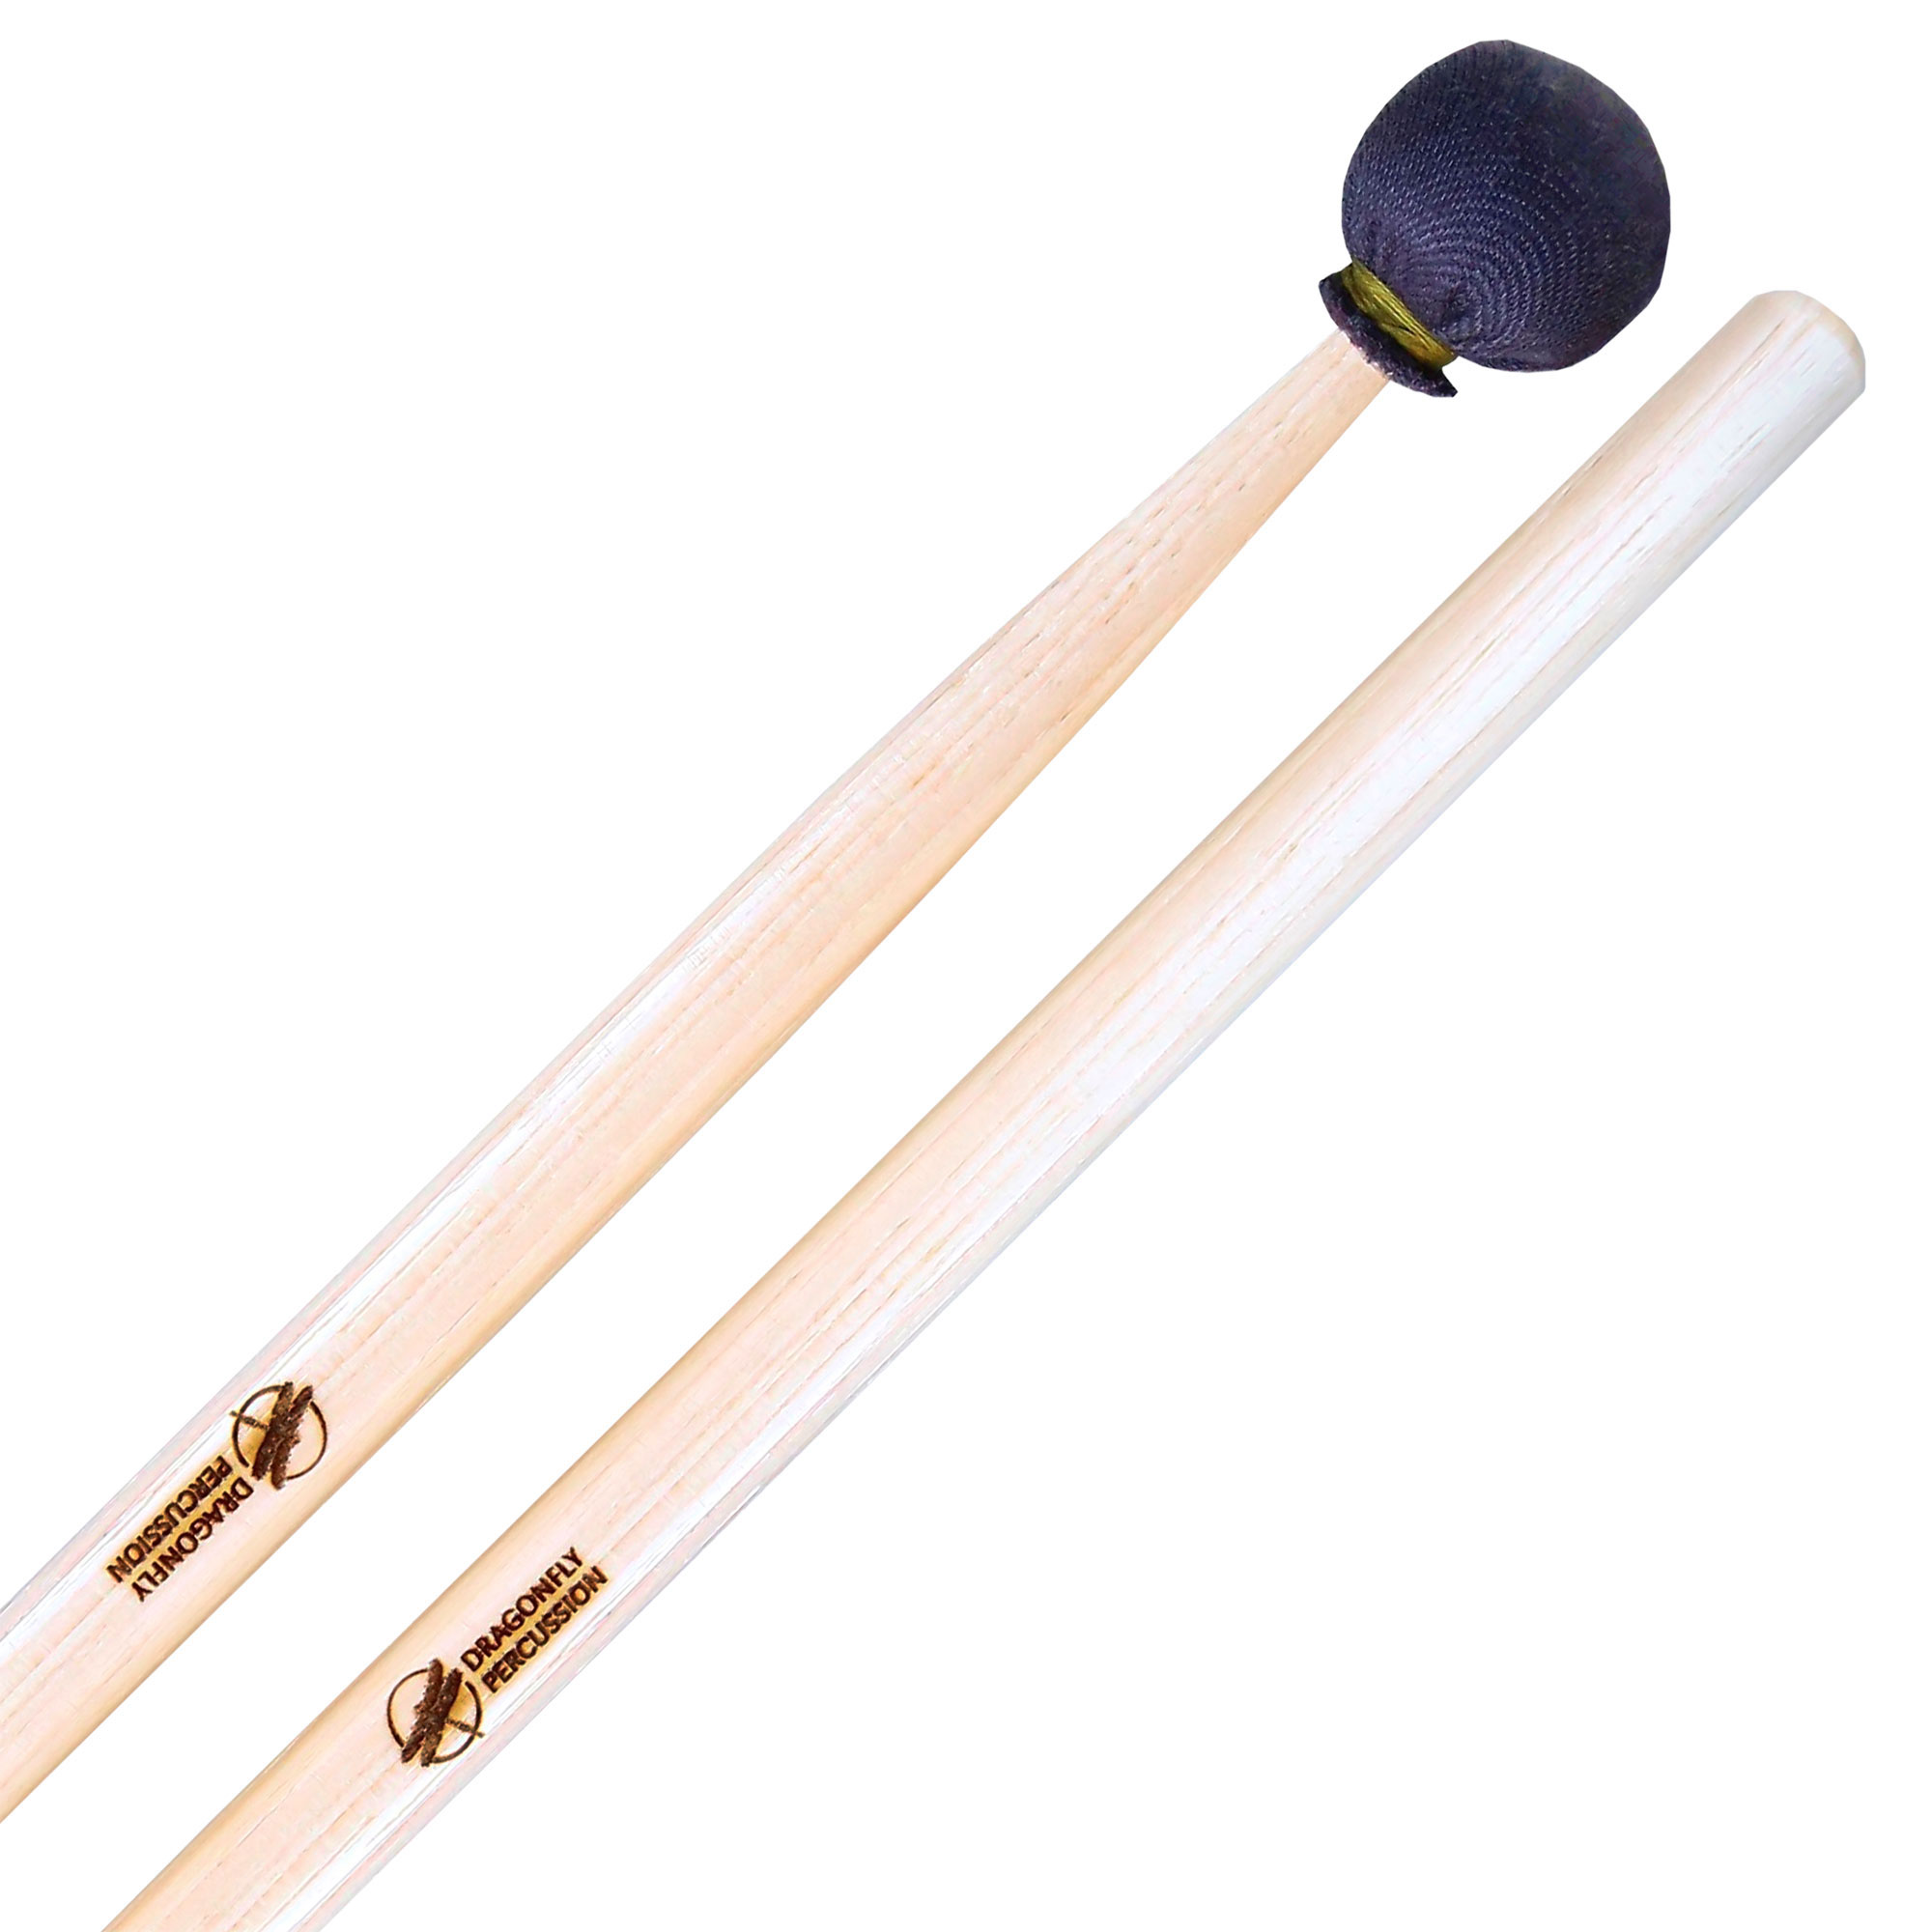 Dragonfly Percussion Medium Suspended Cymbal Mallets with Hickory Handles